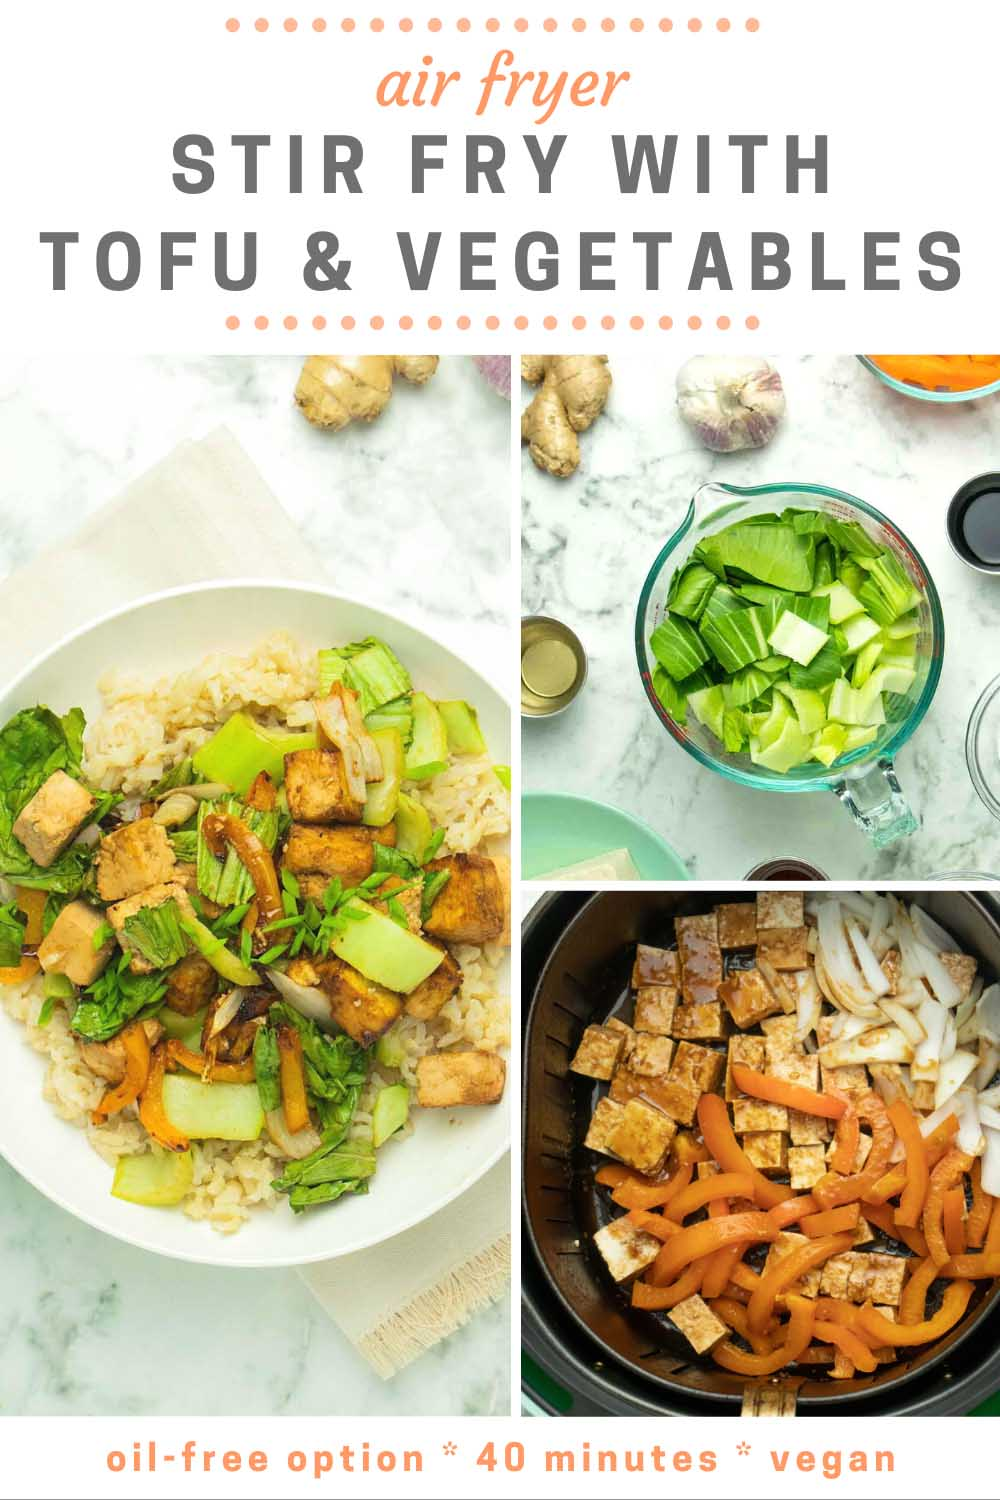 image collage of air fryer stir fry in a bowl with rice with pictures of the ingredients and the veggies in the air fryer